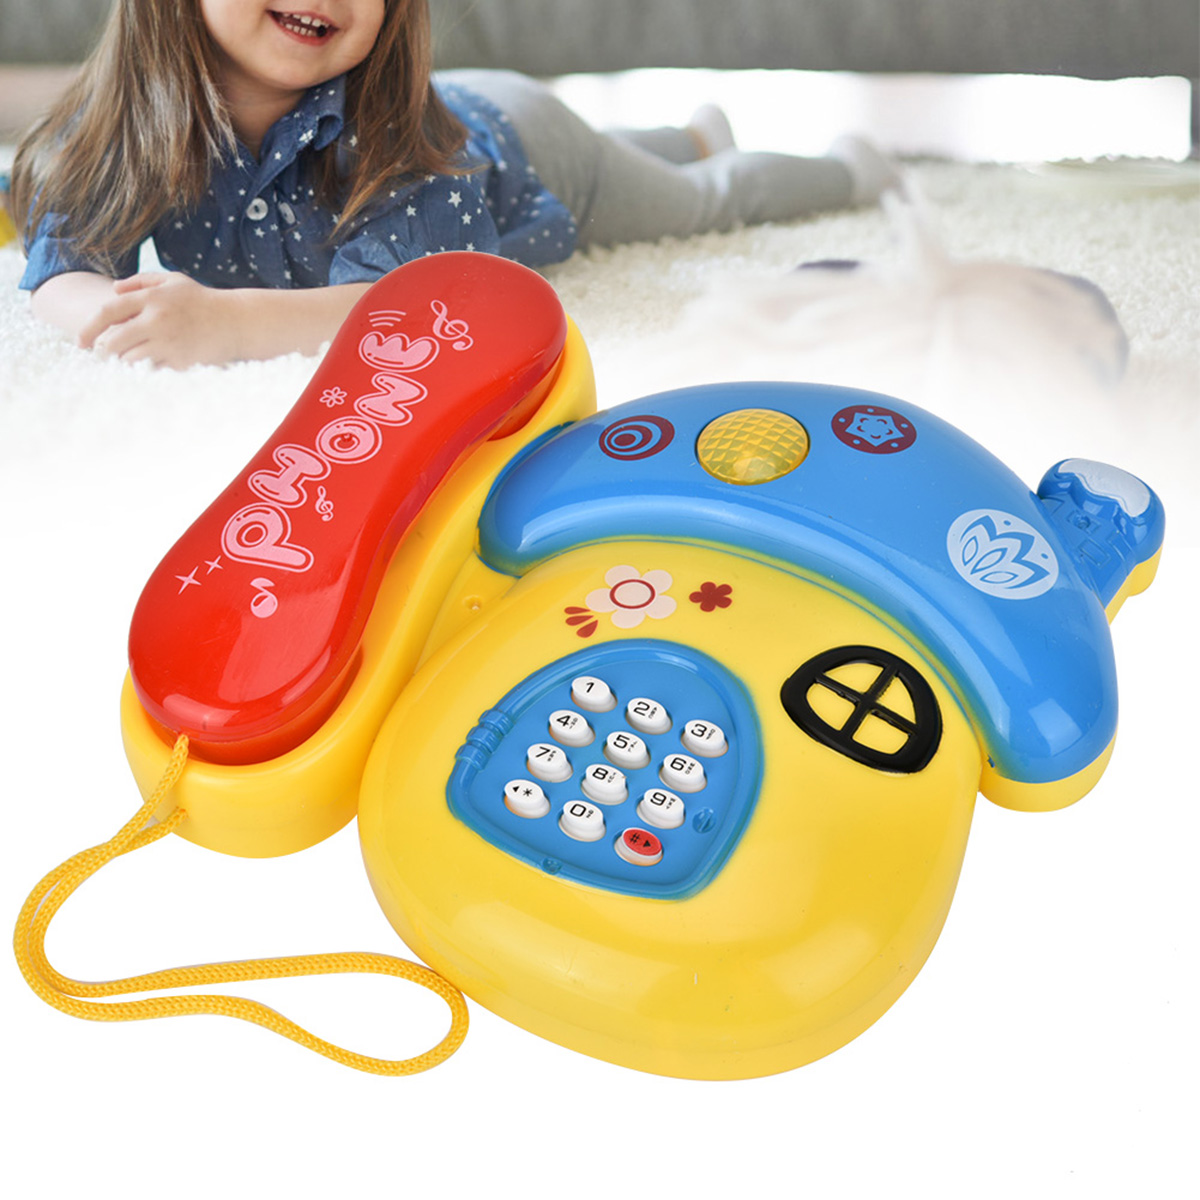 Electronic Toy Phone Kids Educational Learning Toys Mushroom Plastic Telephone Toy Kids Early Education Gift With Music Light